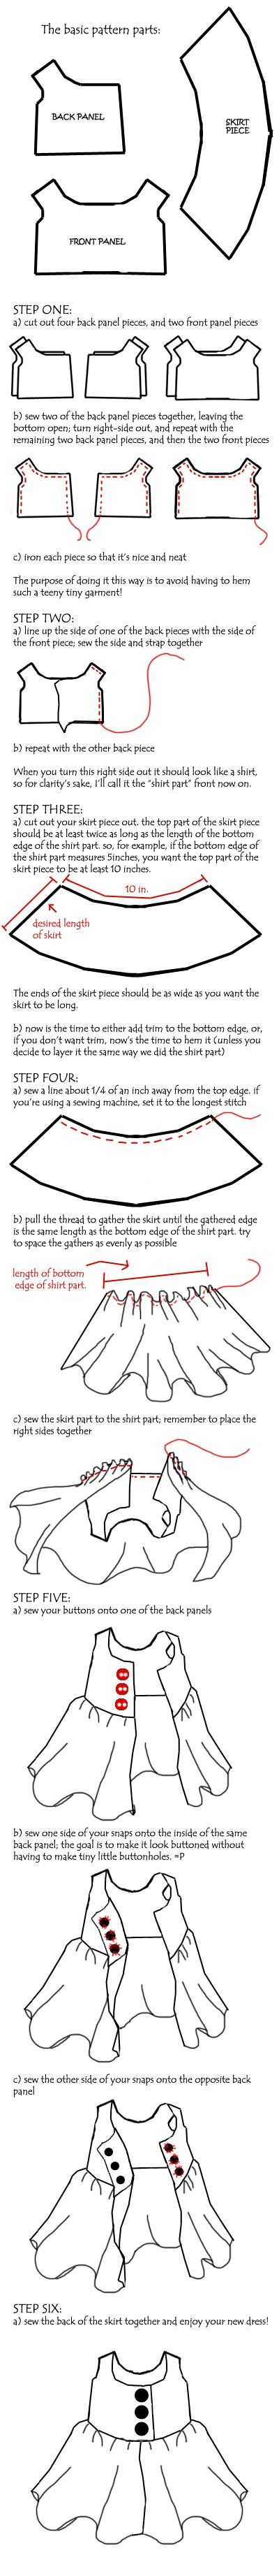 Plushie Dress Tutorial by ~onetruetree on deviantART Waldorf doll dress, top. How to sew pattern.